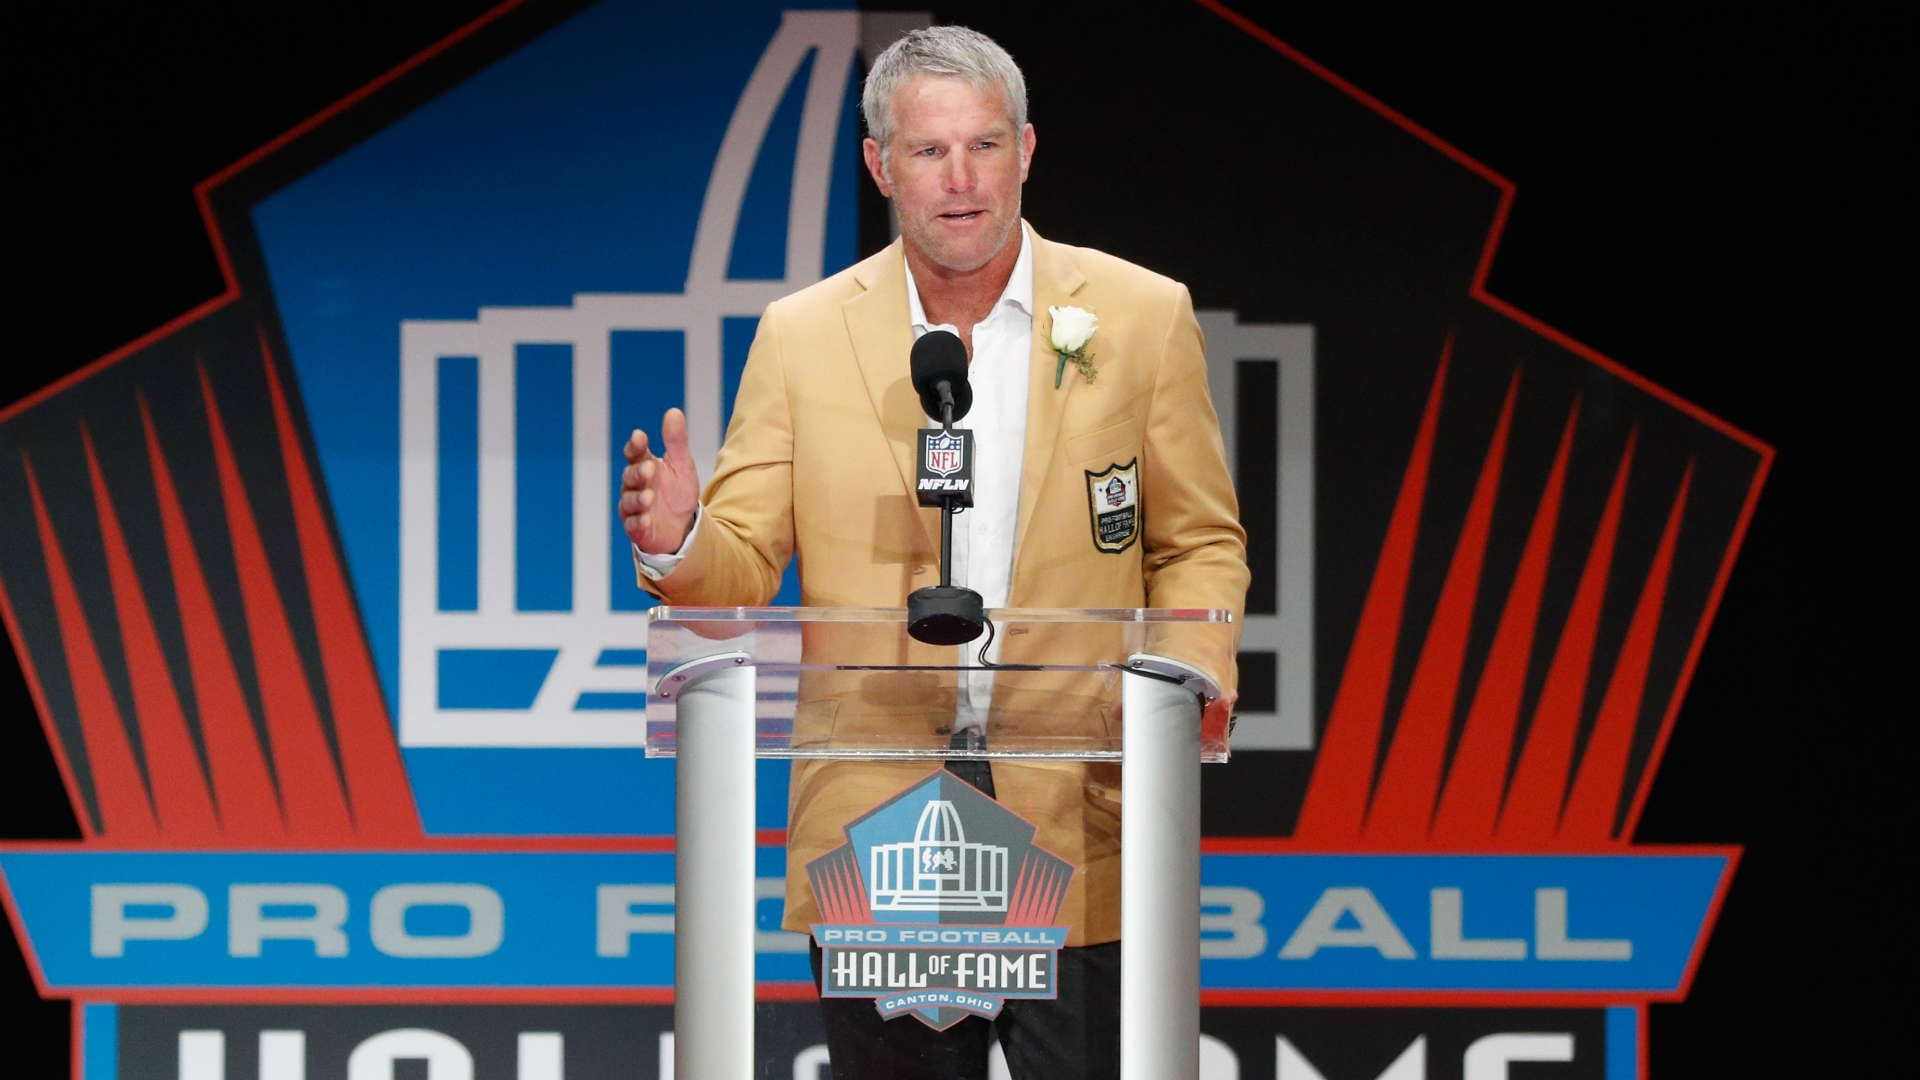 favre-brett-8616-us-news-getty-ftr_1g6iohmazzesn1doyoxi7w523j